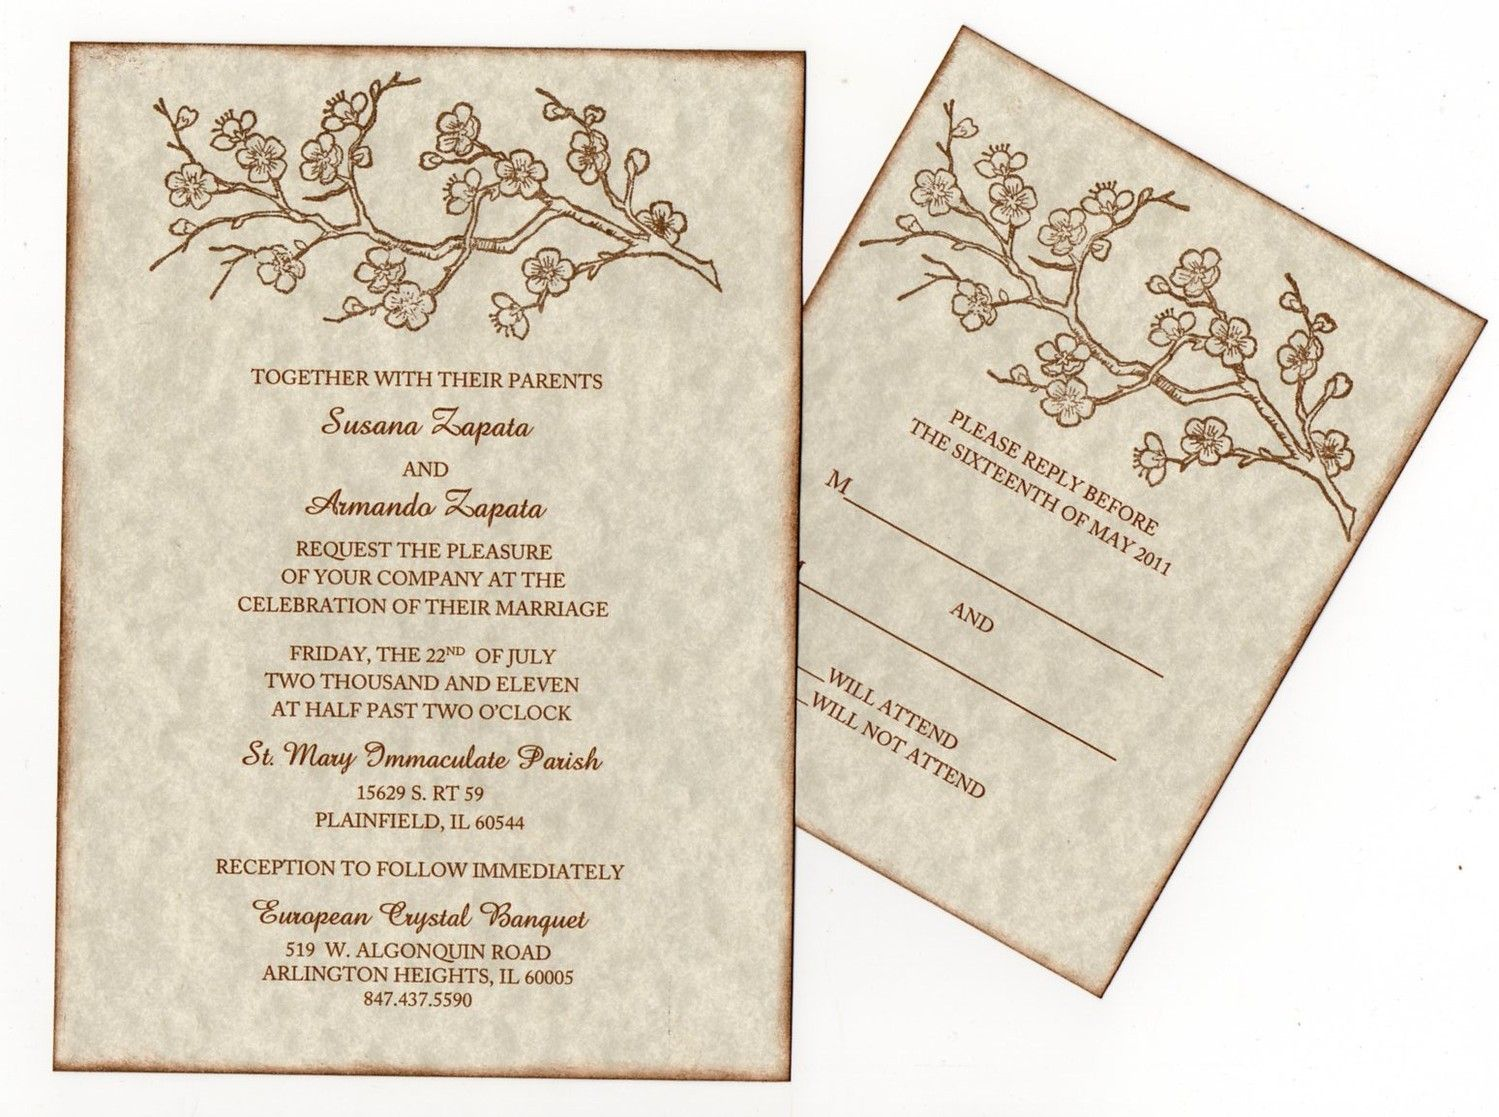 Wedding invitation wording indian wedding invitation templates psd wedding invitation wording indian wedding invitation templates psd stopboris Image collections